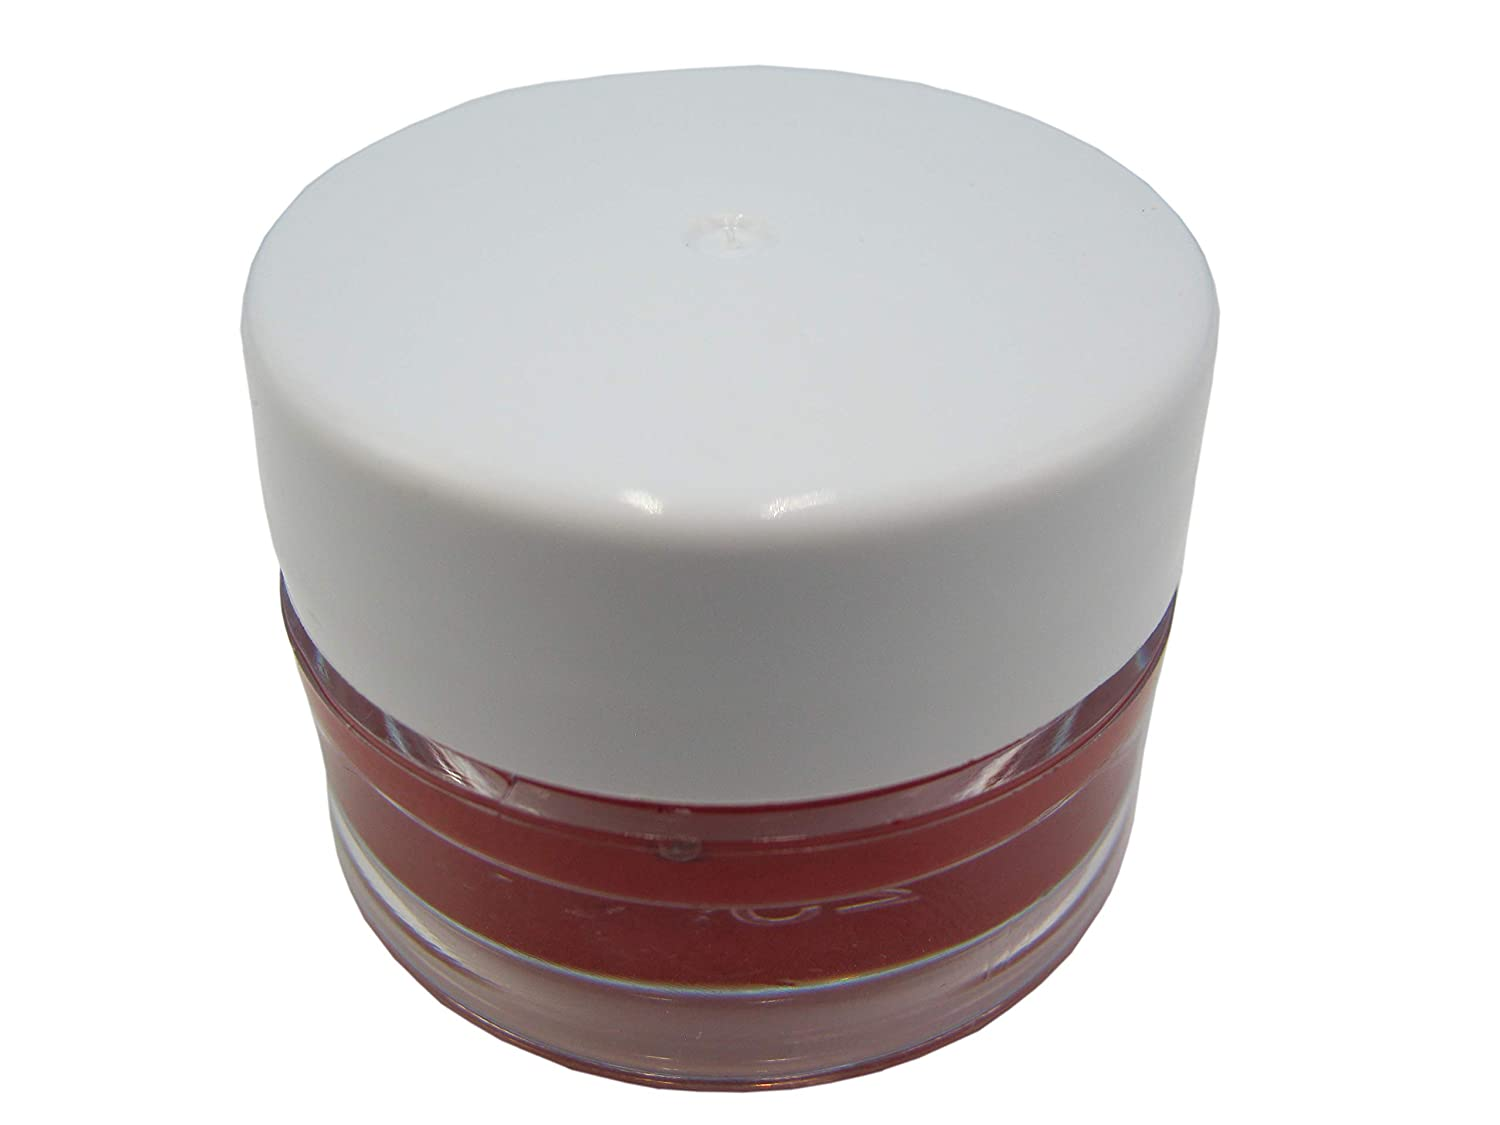 Food Grade Classic Soluble Color Pigment, Additives For Soap, Lip Balm, Lipsticks, and Other Cosmetics, Bob-Jerry (Cool Red)